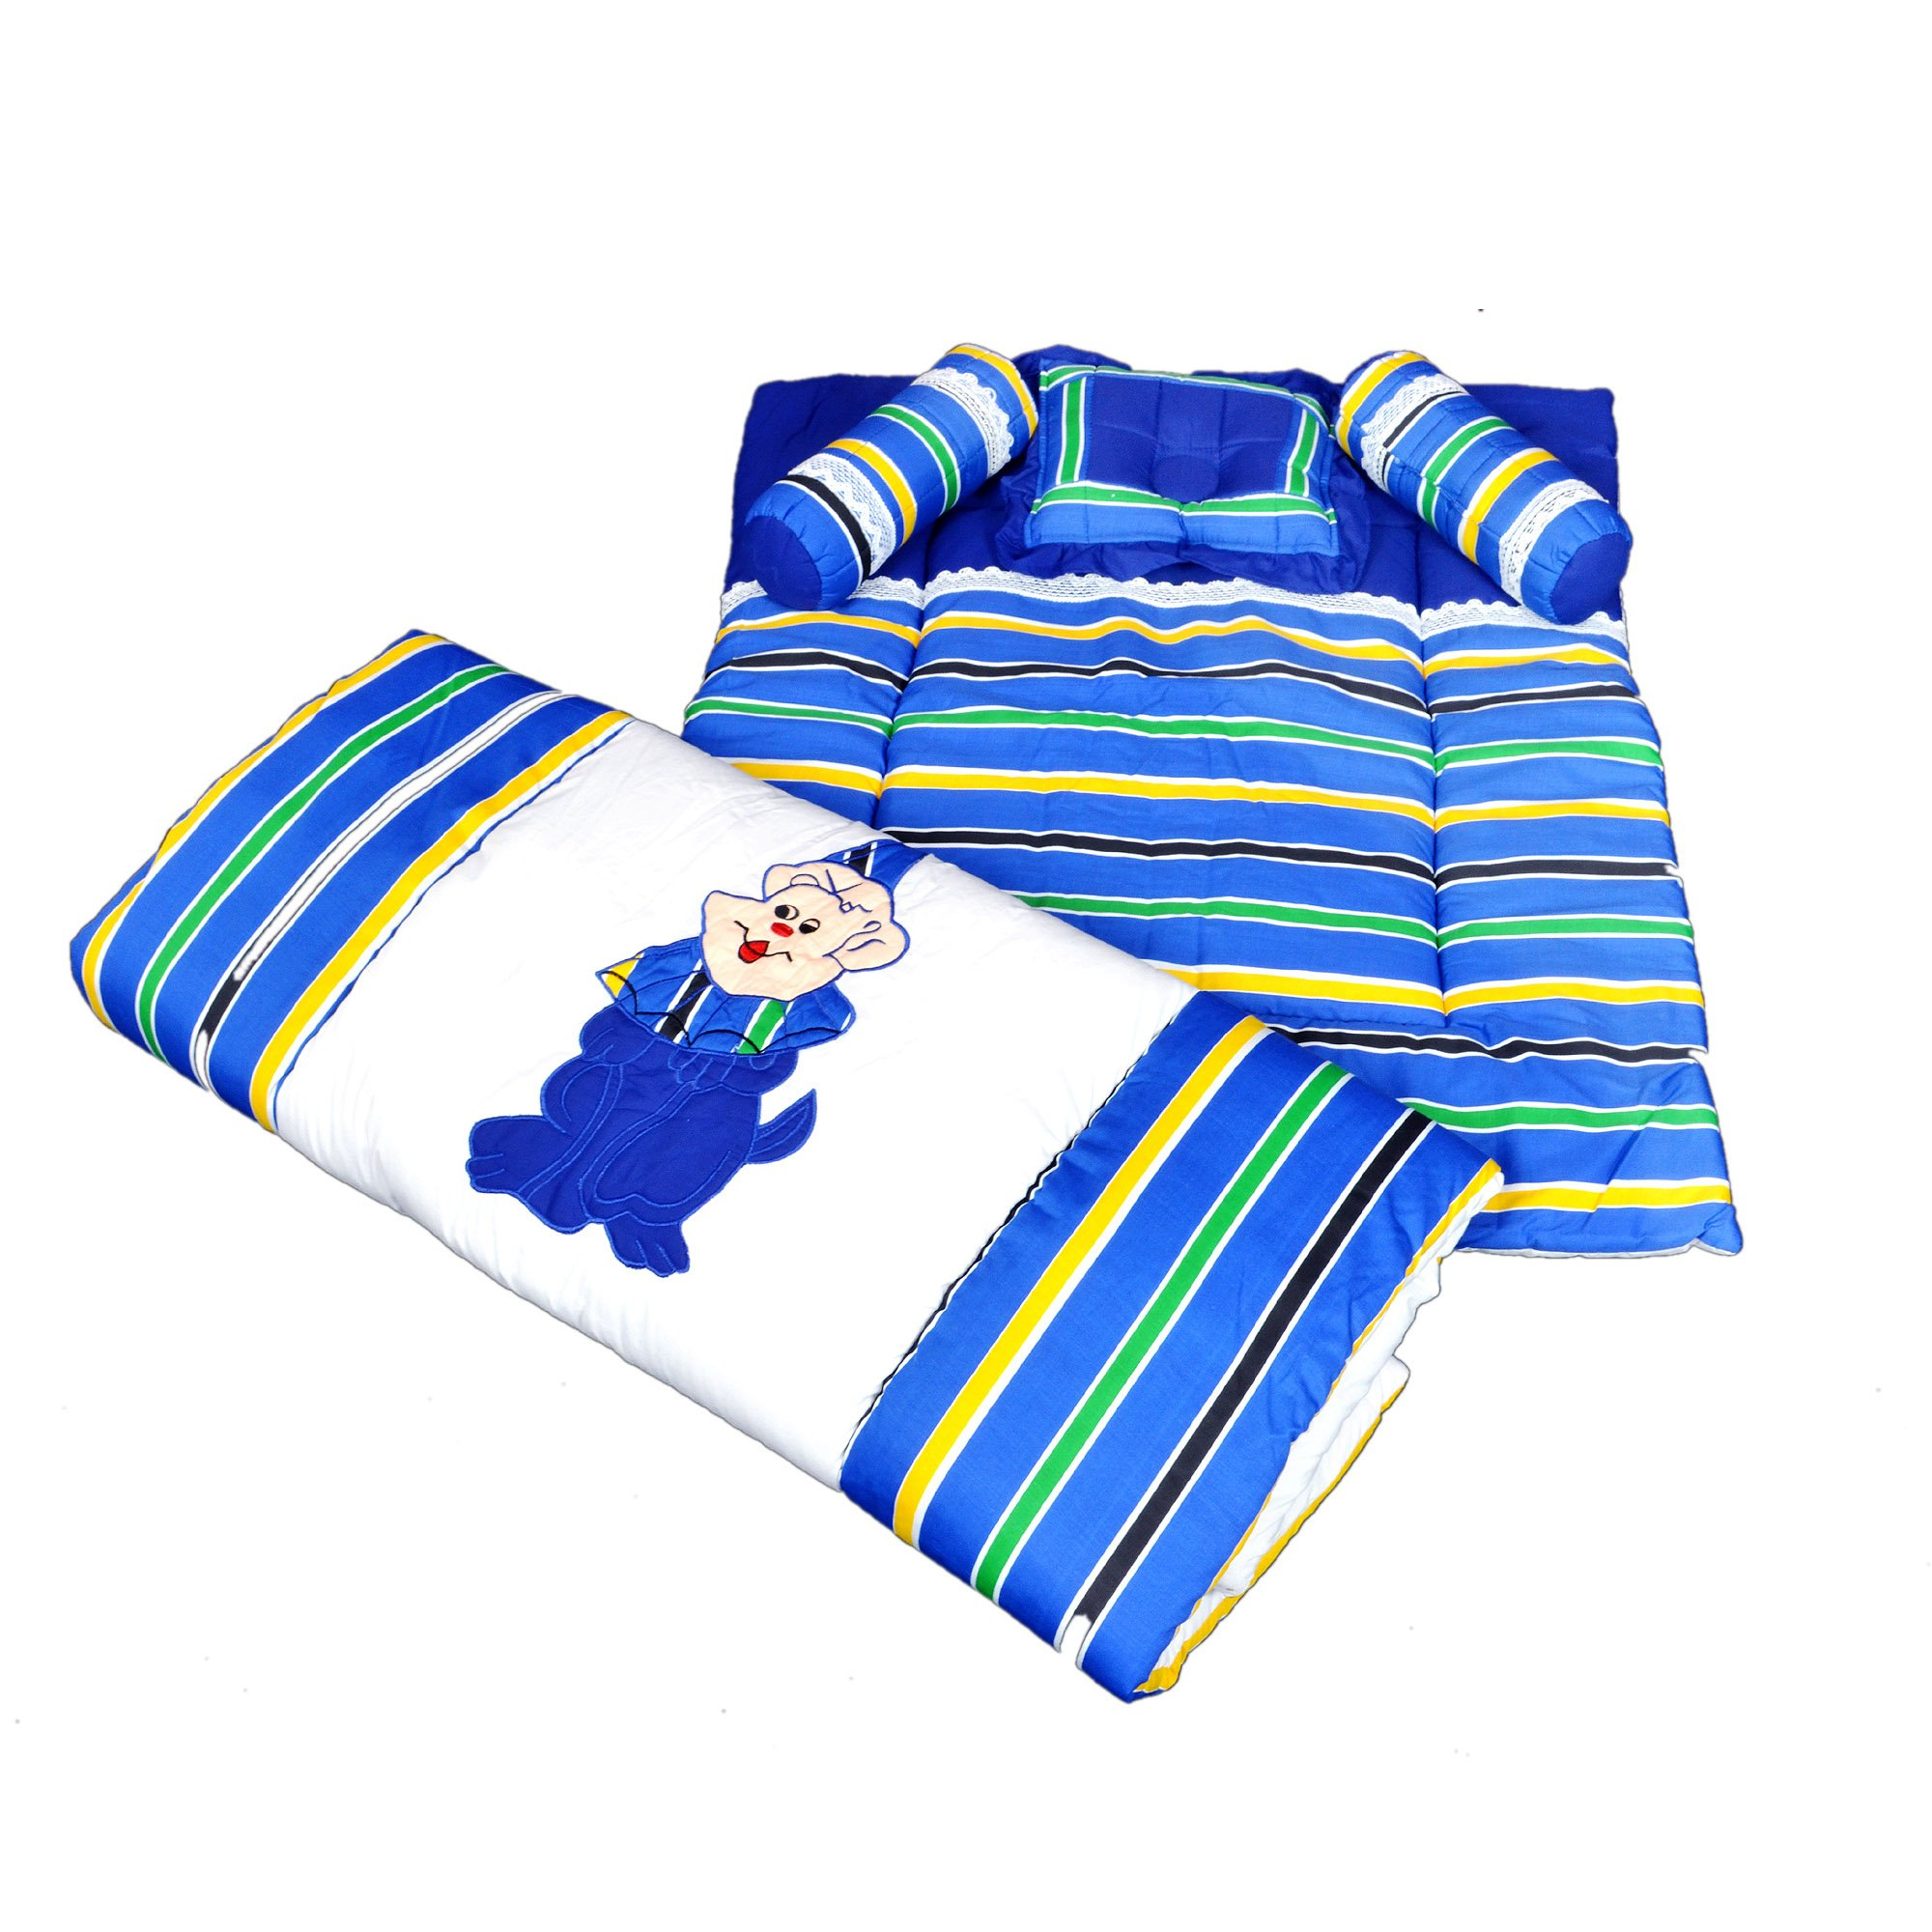 Maple Krafts Pure Cotton Baby Bedding set upto 24 months Royal Blue with Pillow